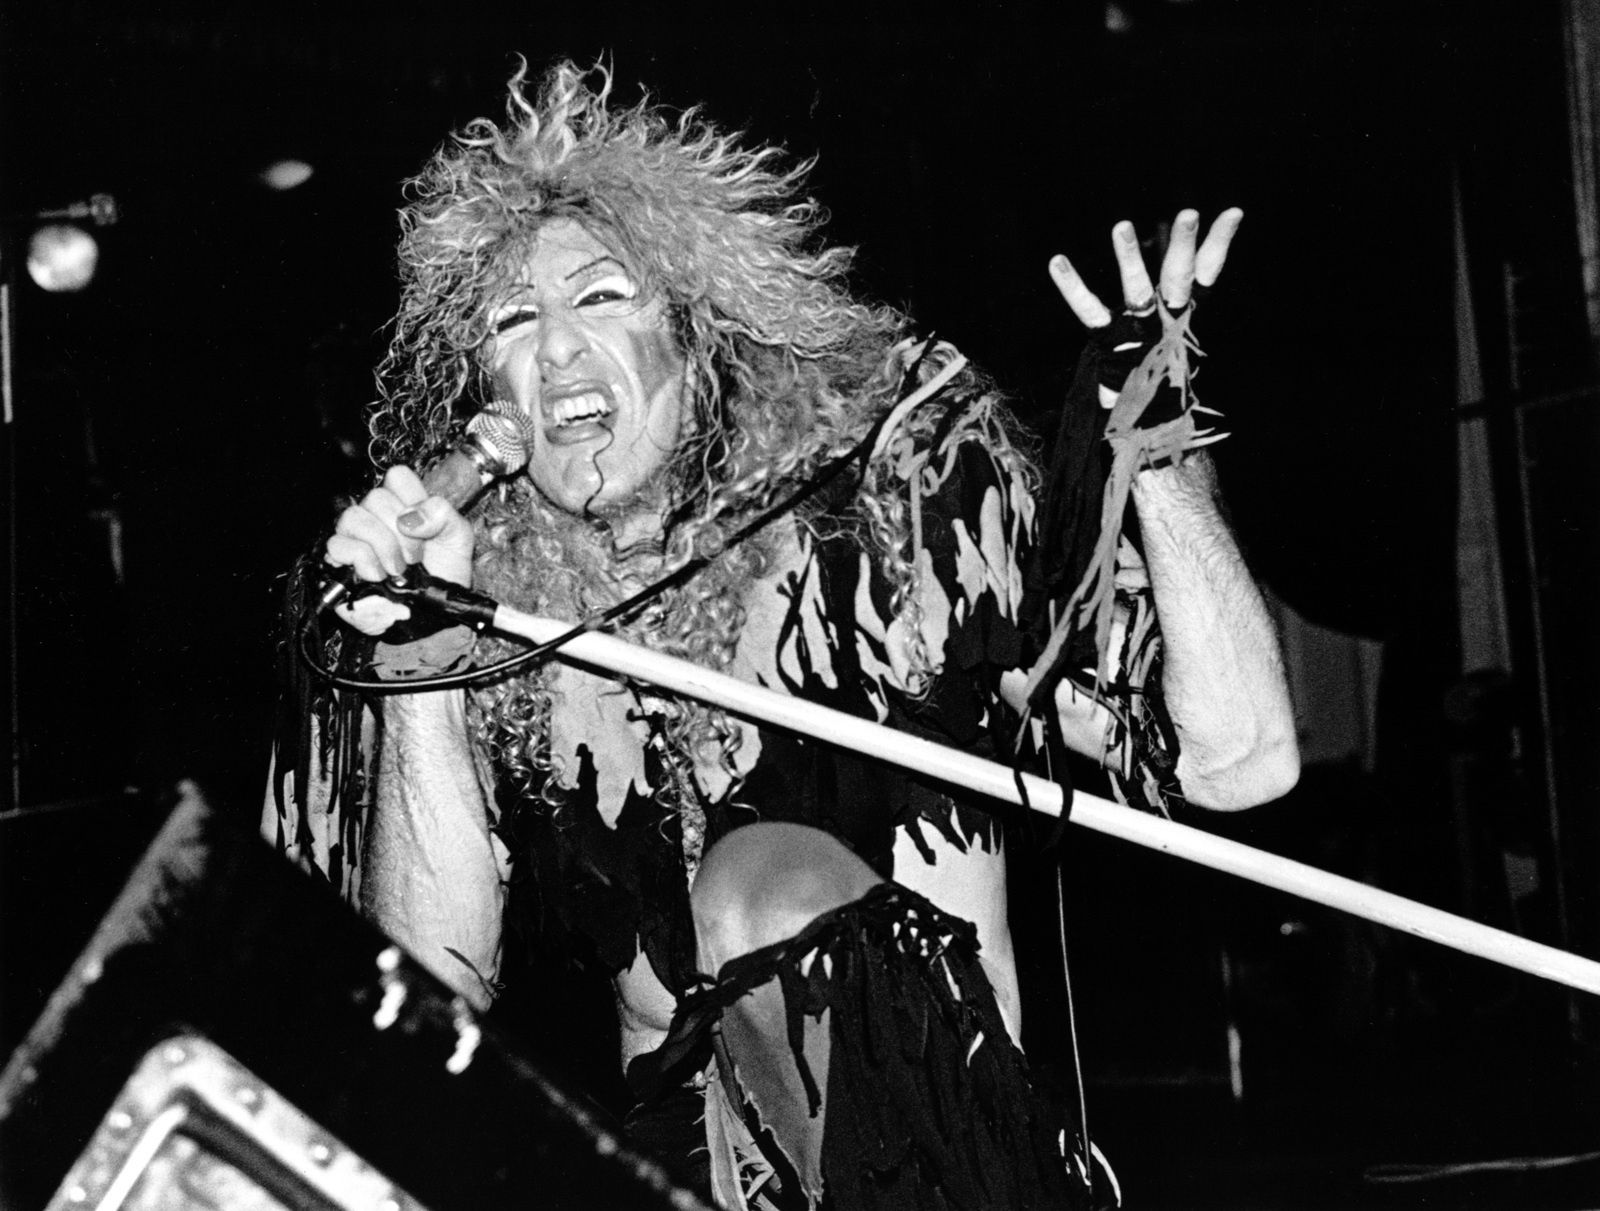 Dee Snider - 1984 - Twisted Sister frontman got down with his mic during a concert - Getty Images